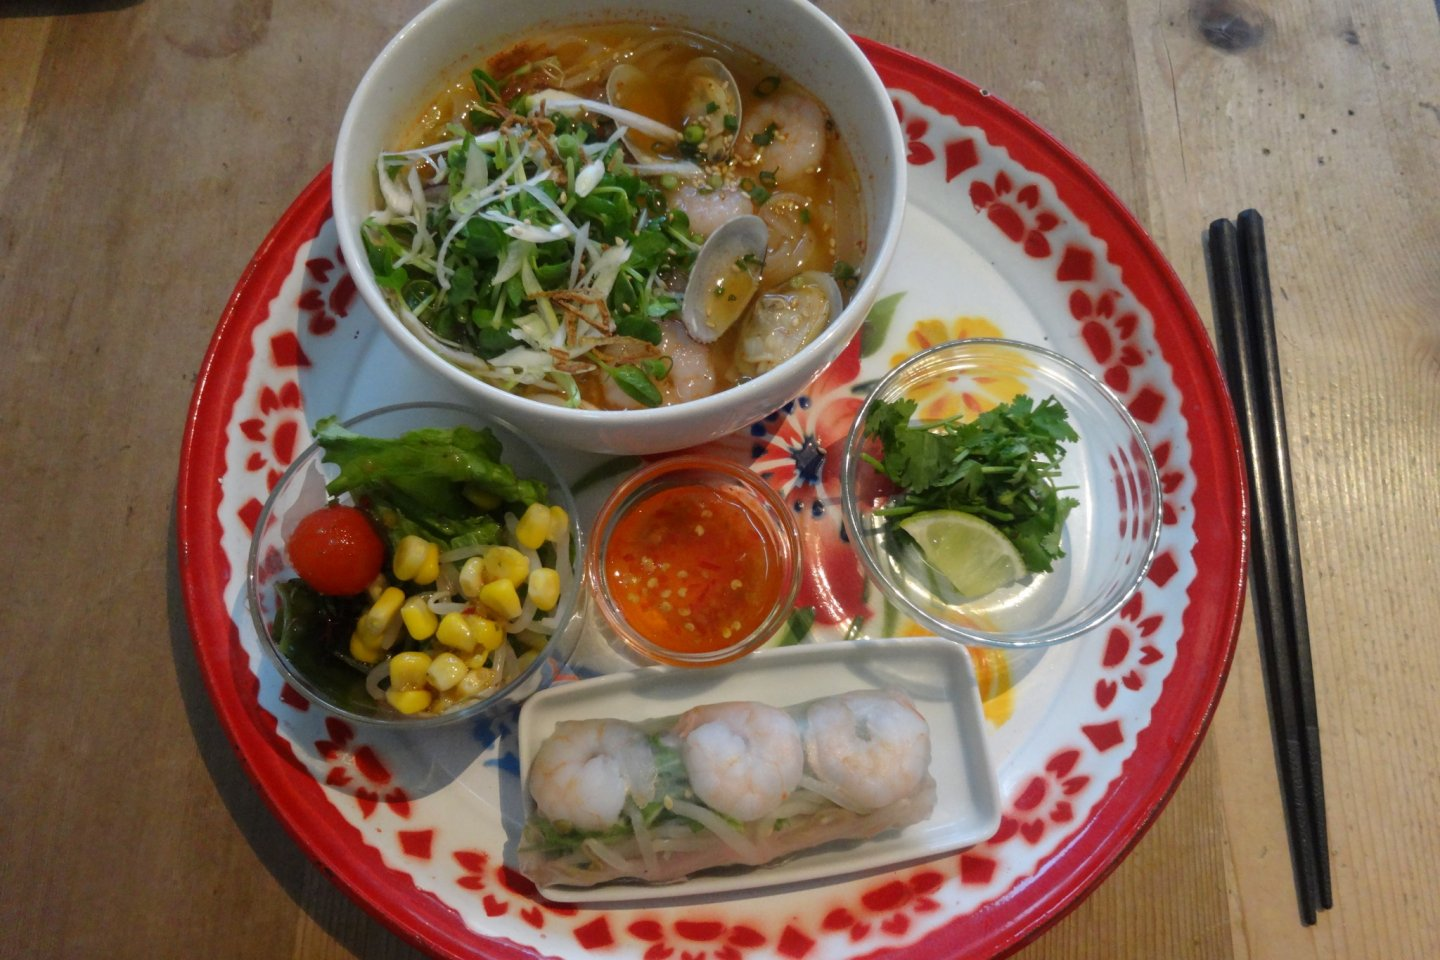 The pho noodle and spring roll lunch plate